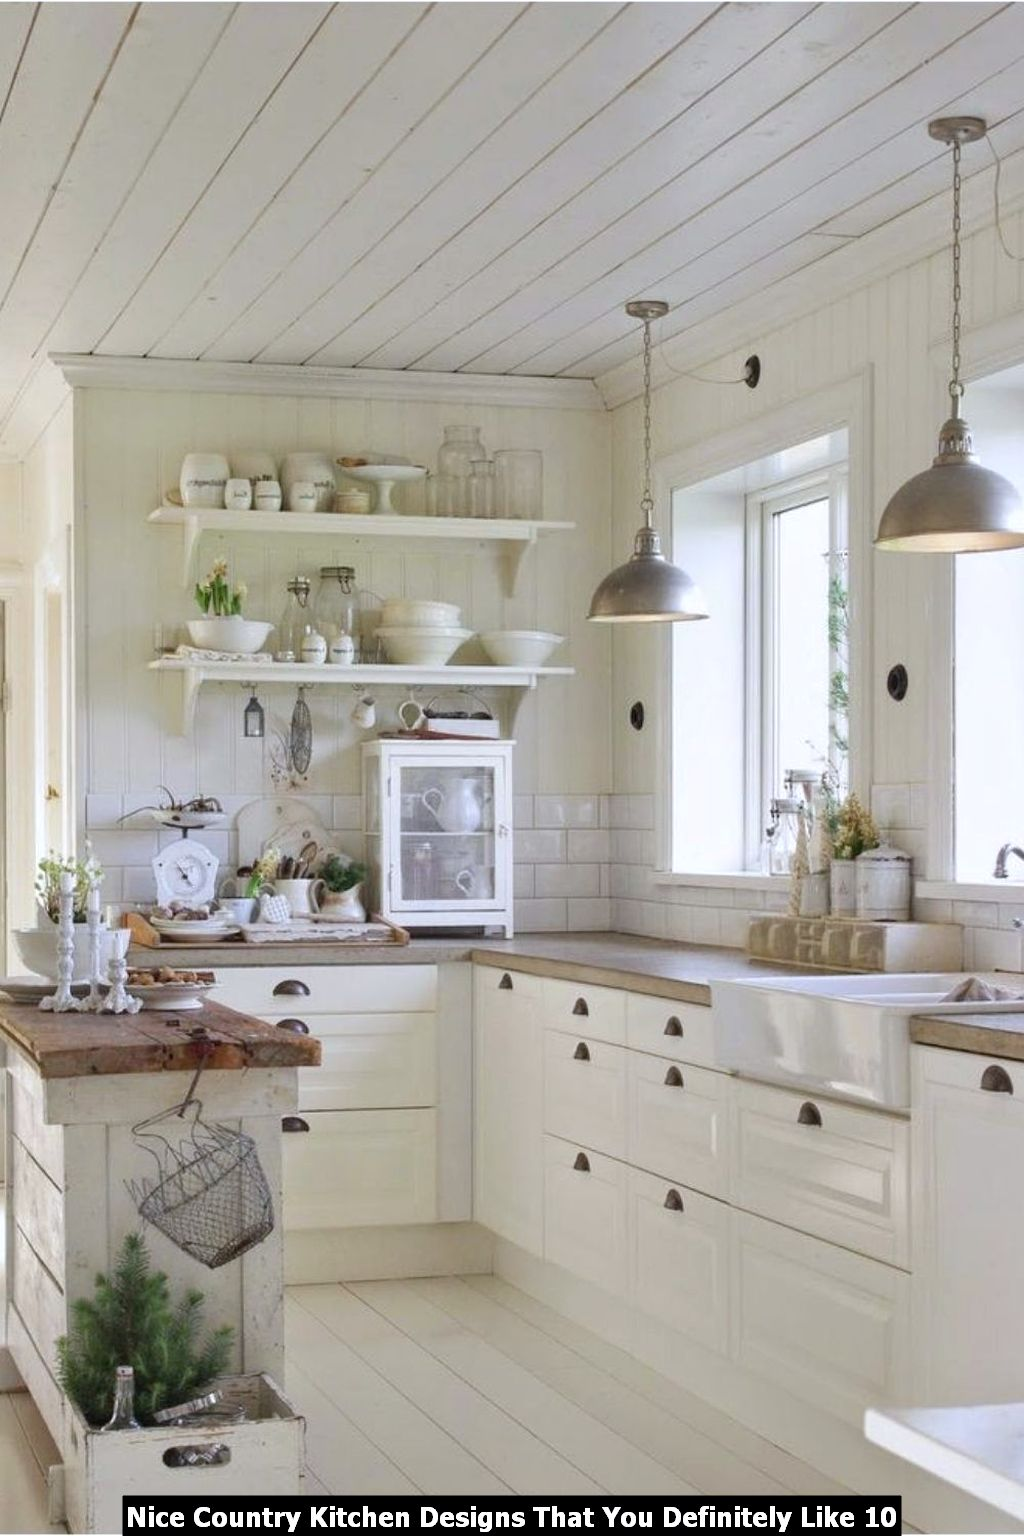 Nice Country Kitchen Designs That You Definitely Like 10